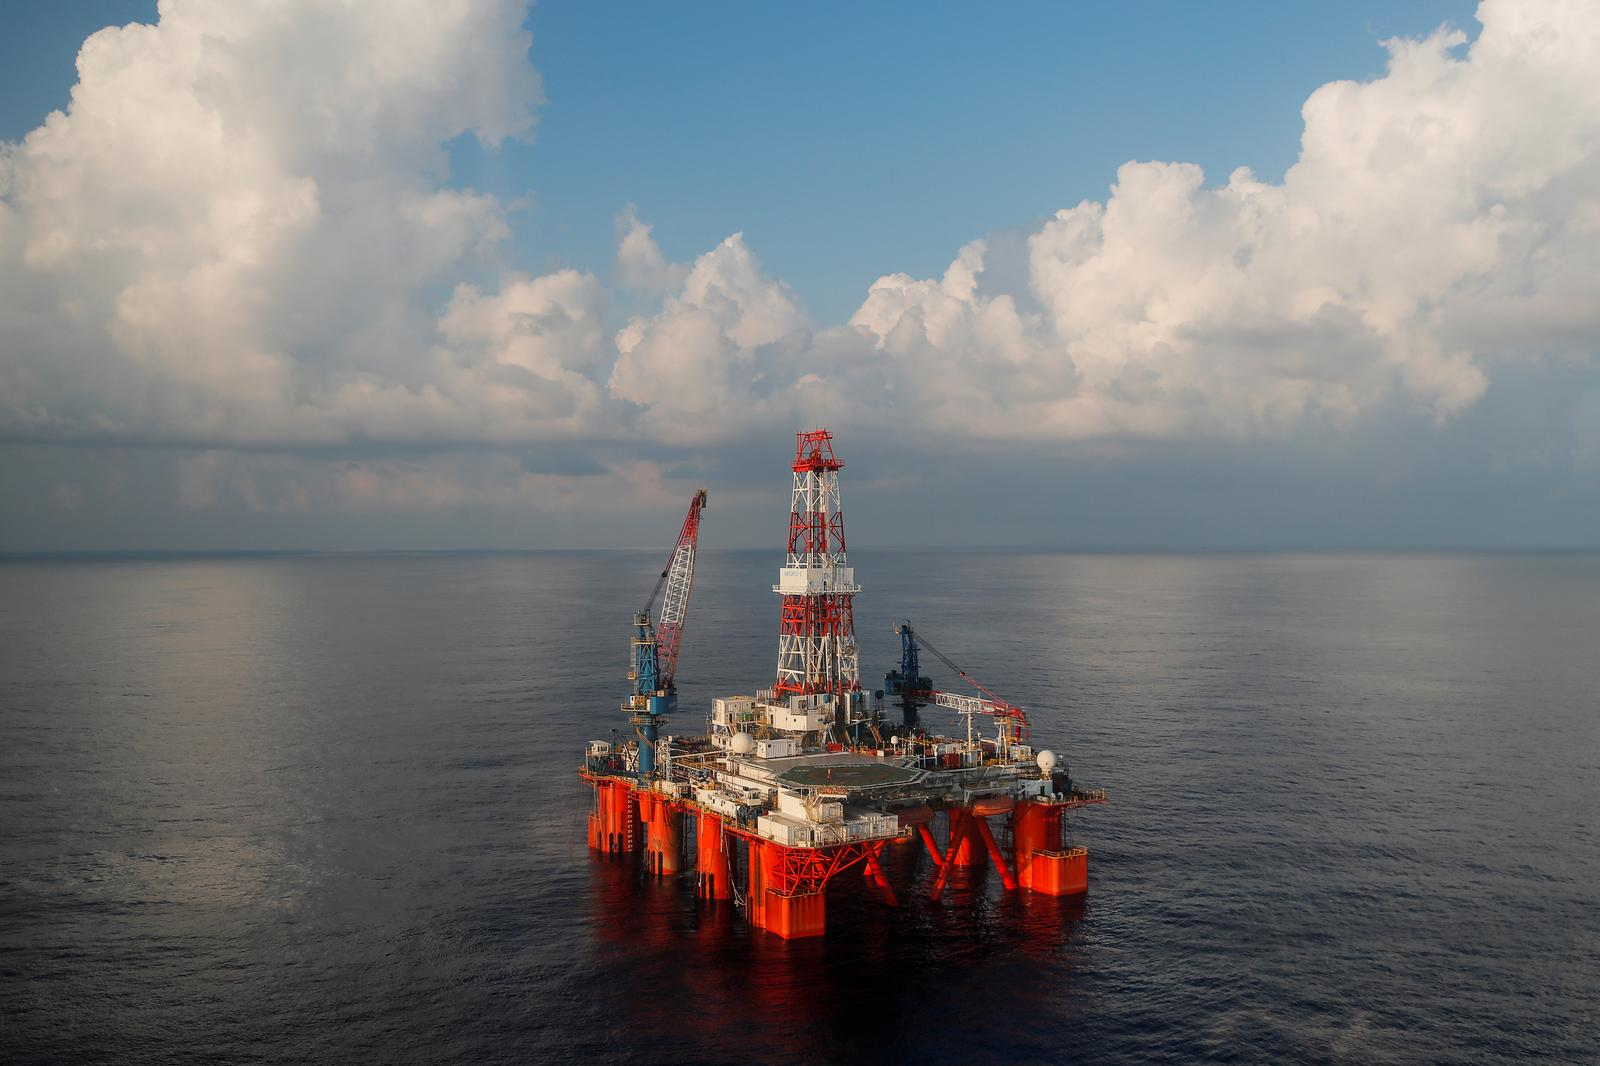 Vietnam extends operation of East Vietnam Sea oil rig amid Beijing's harassment at sea